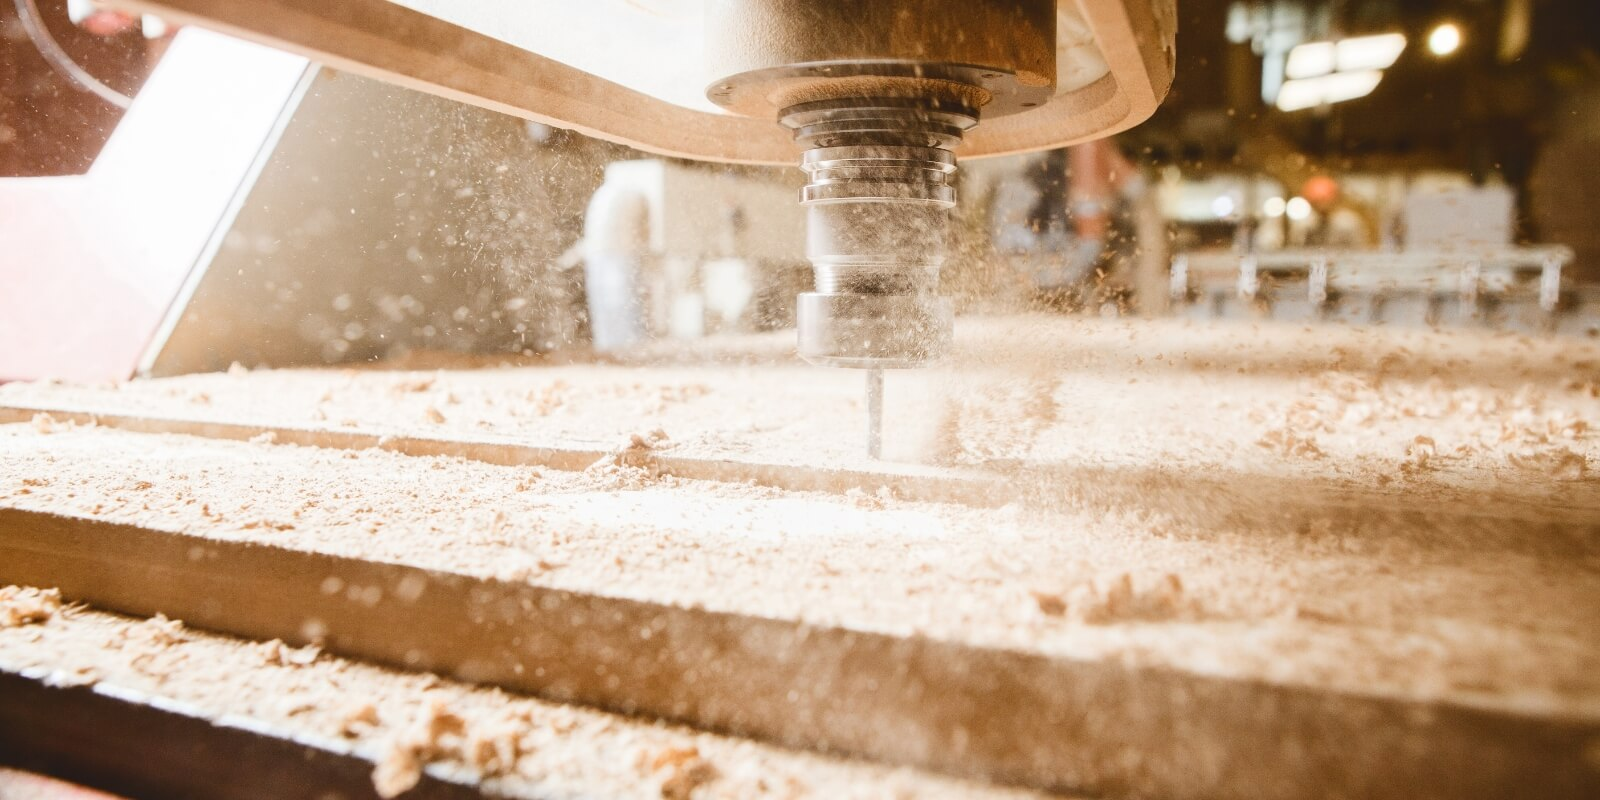 cnc router with wood chips flying around it